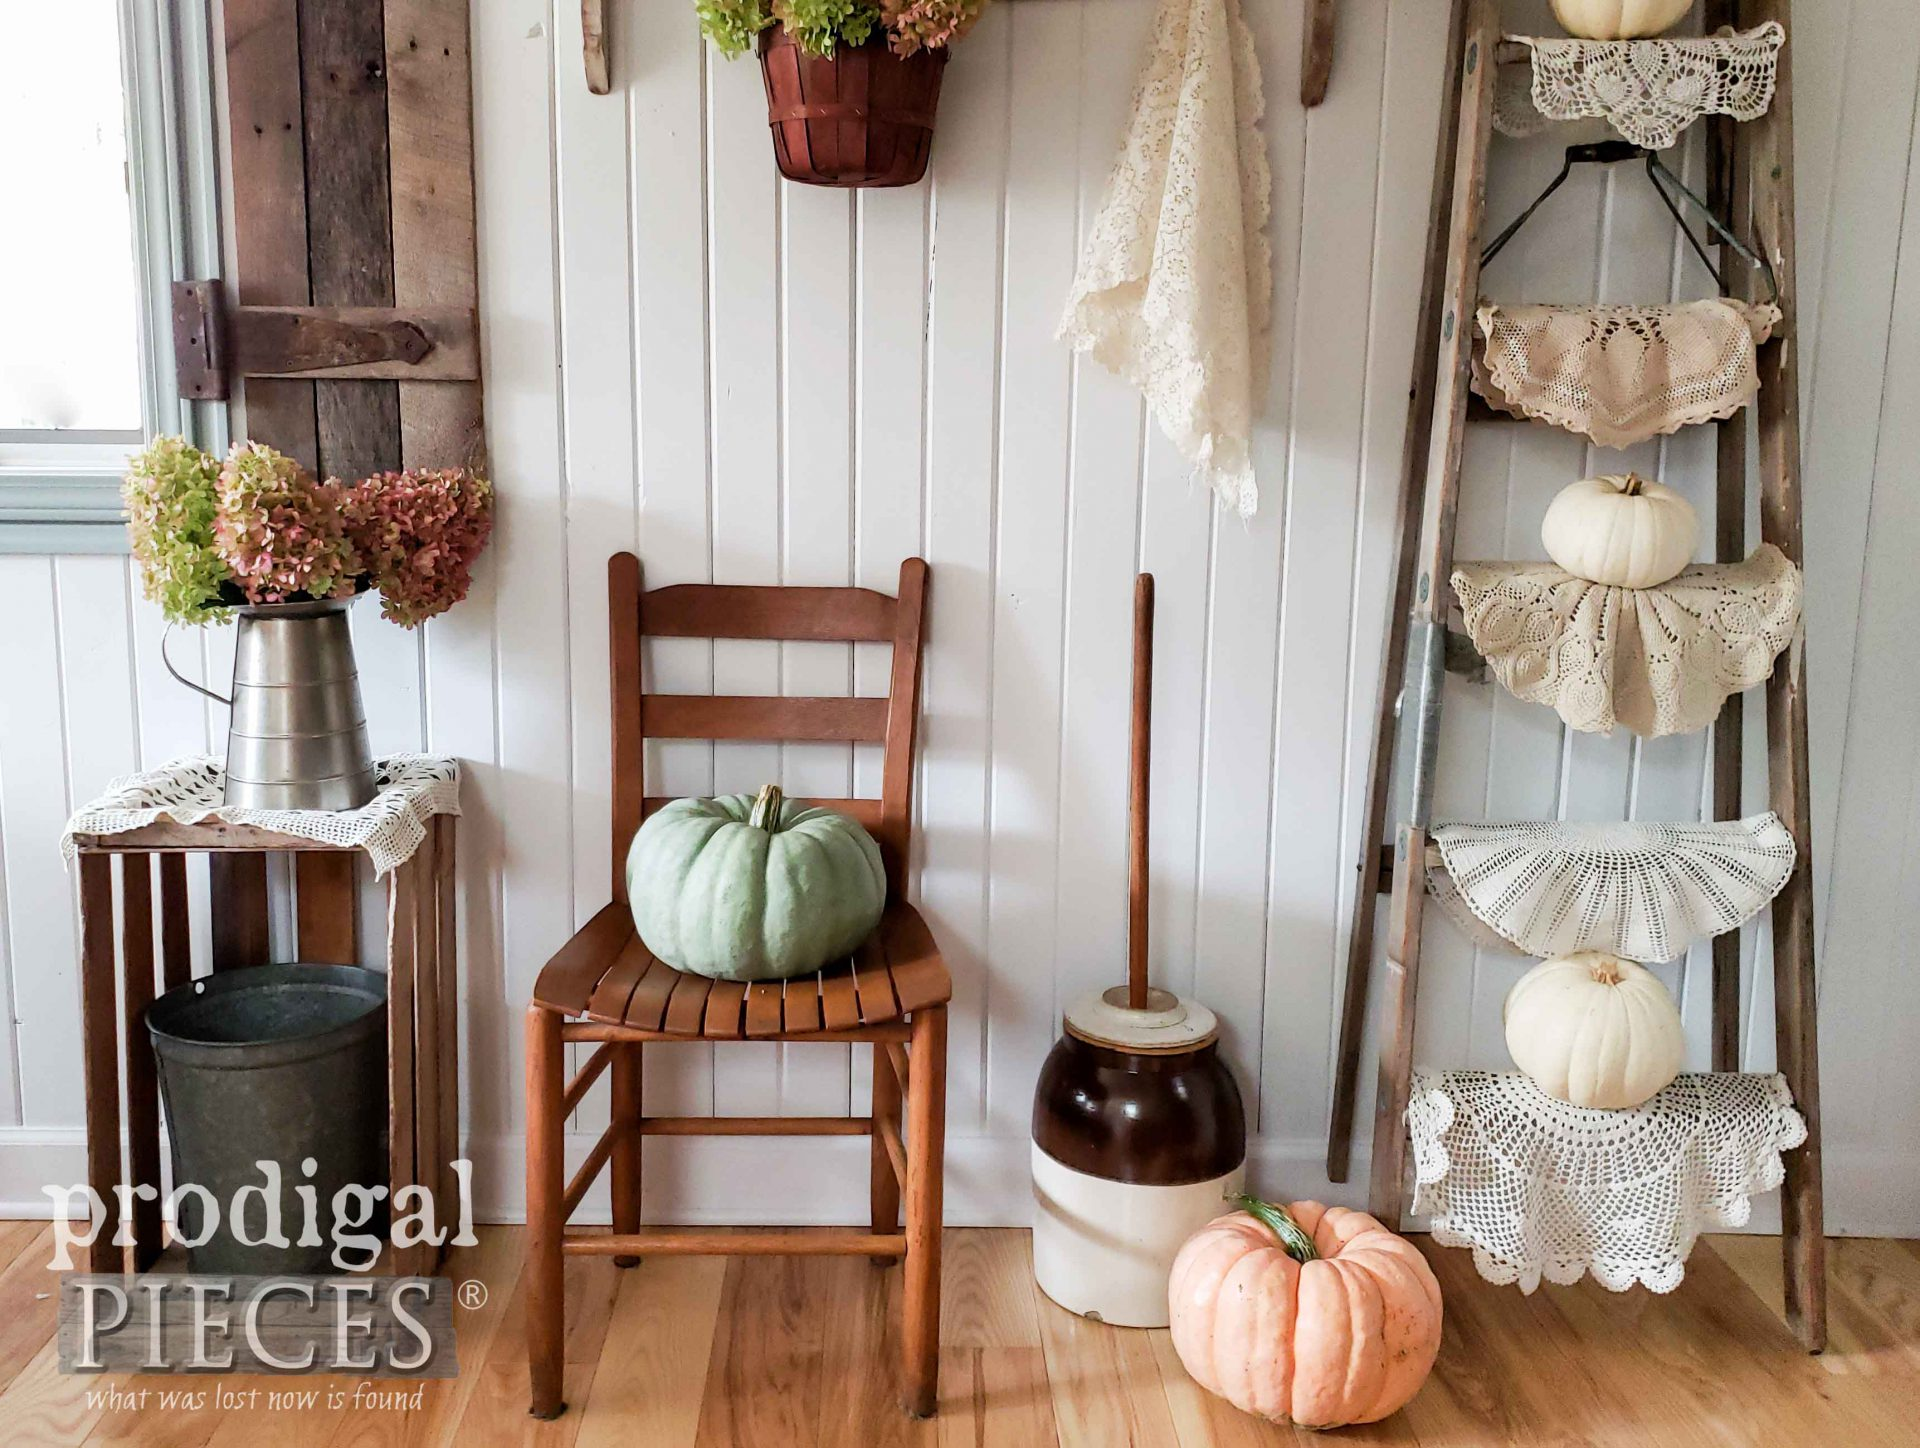 Fall Farmhouse Pumpkins in Interior Design by Larissa of Prodigal Pieces | prodigalpieces.com #prodigalpieces #farmhouse #home #homedecor #fall